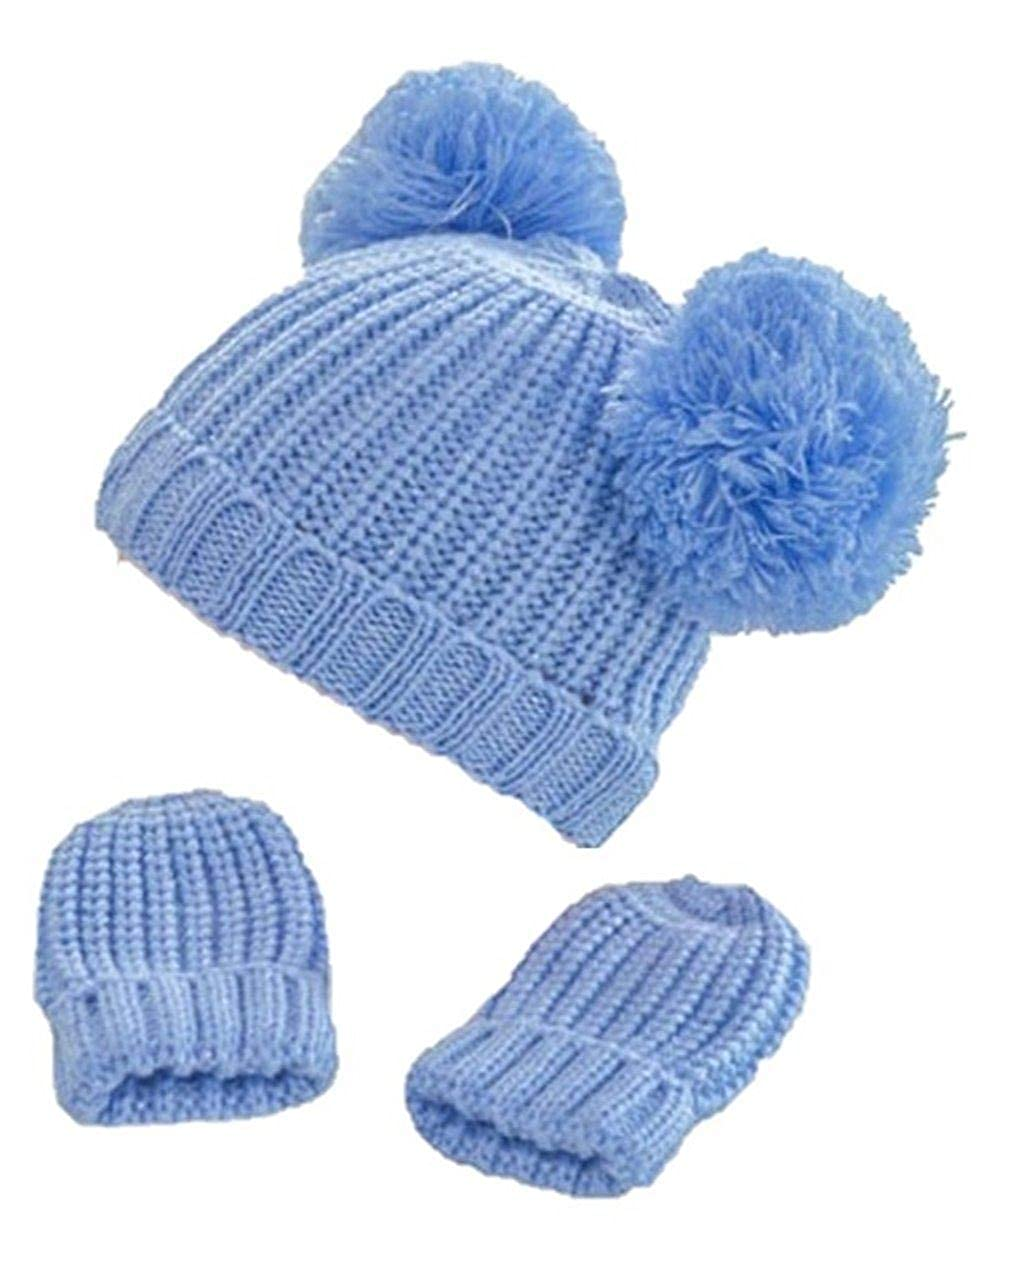 Infants Mittens and Hat Set Winter Outdoor Accessories Boys Girls Soft Touch